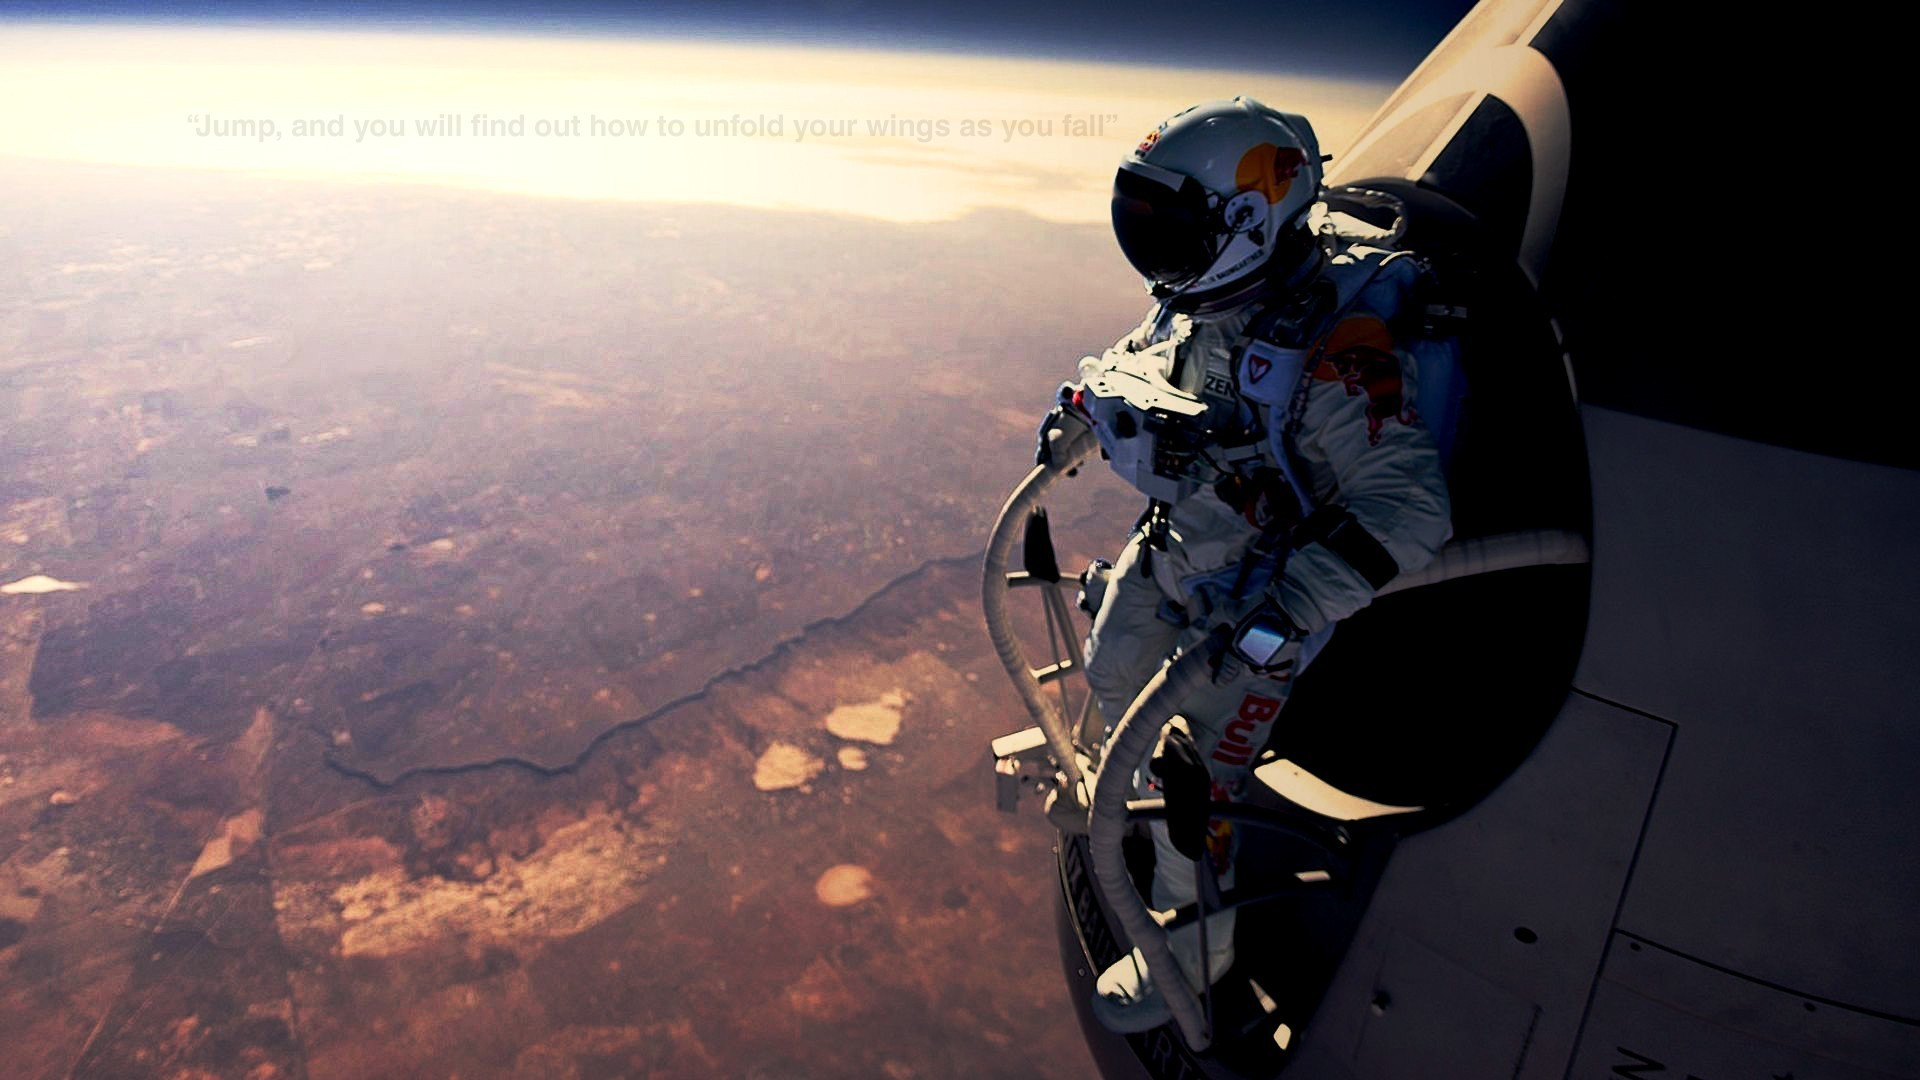 Felix Baumgartner Wallpapers and Background Images   stmednet 1920x1080